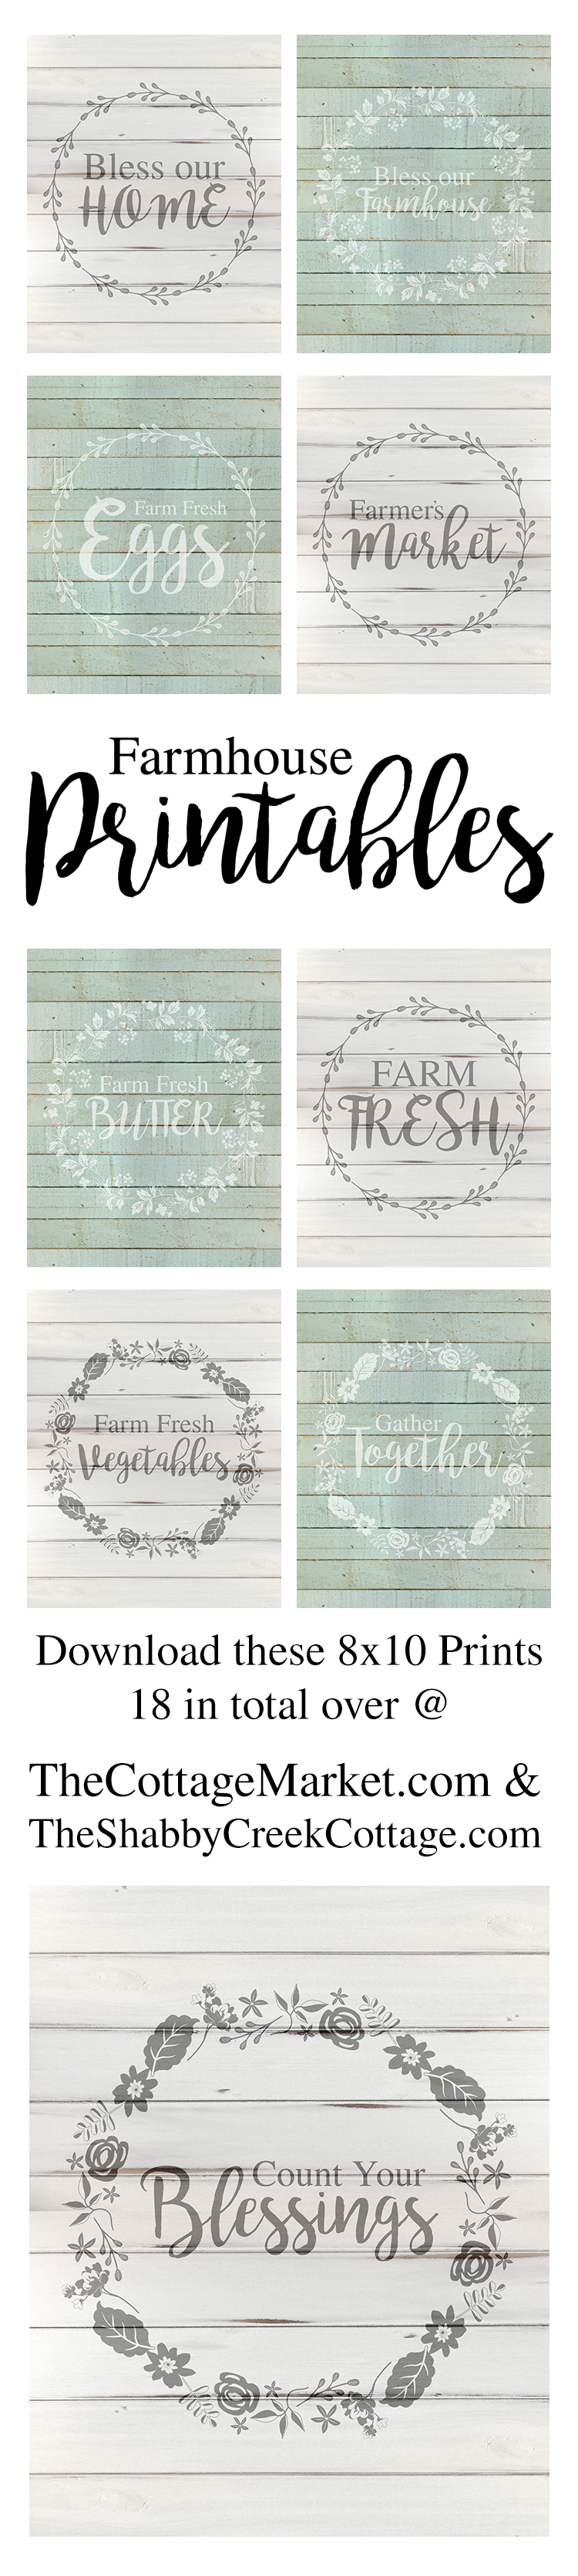 These free farmhouse printables make great wall decor pieces.